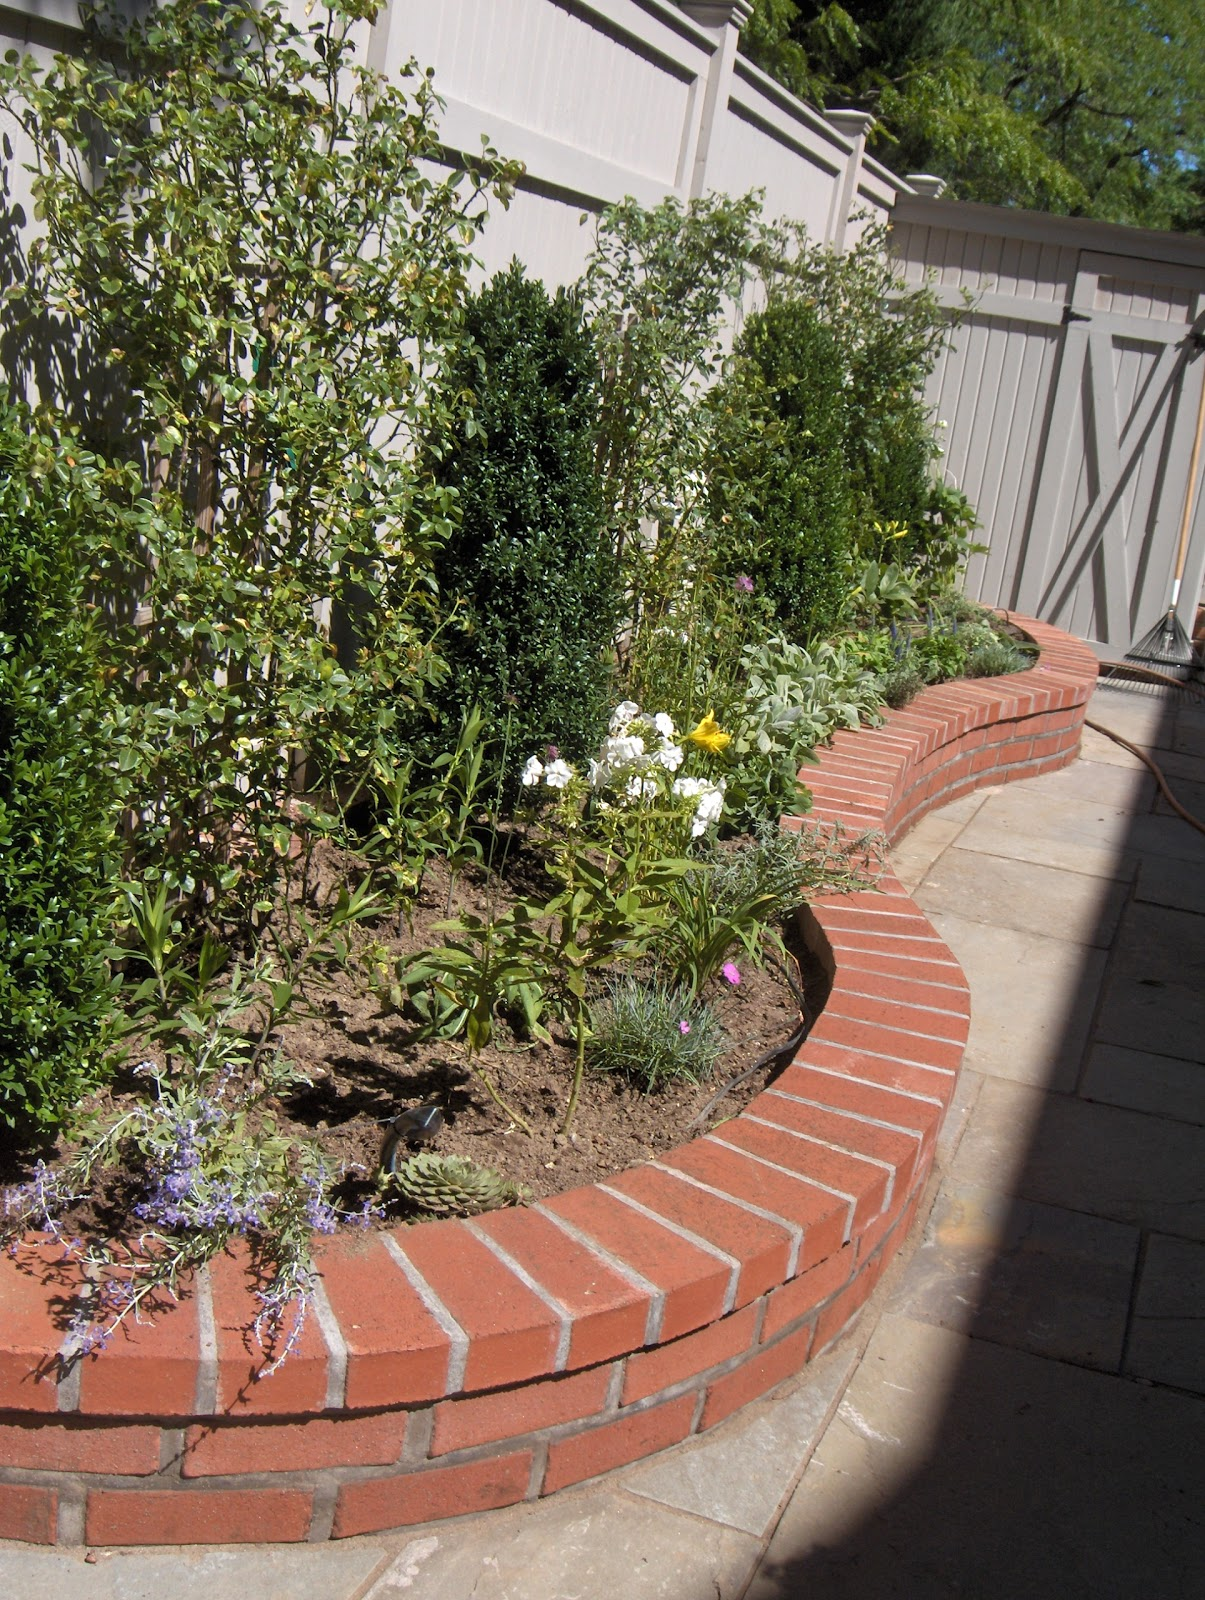 Landscaping Bricks : Brick laminate picture garden walls